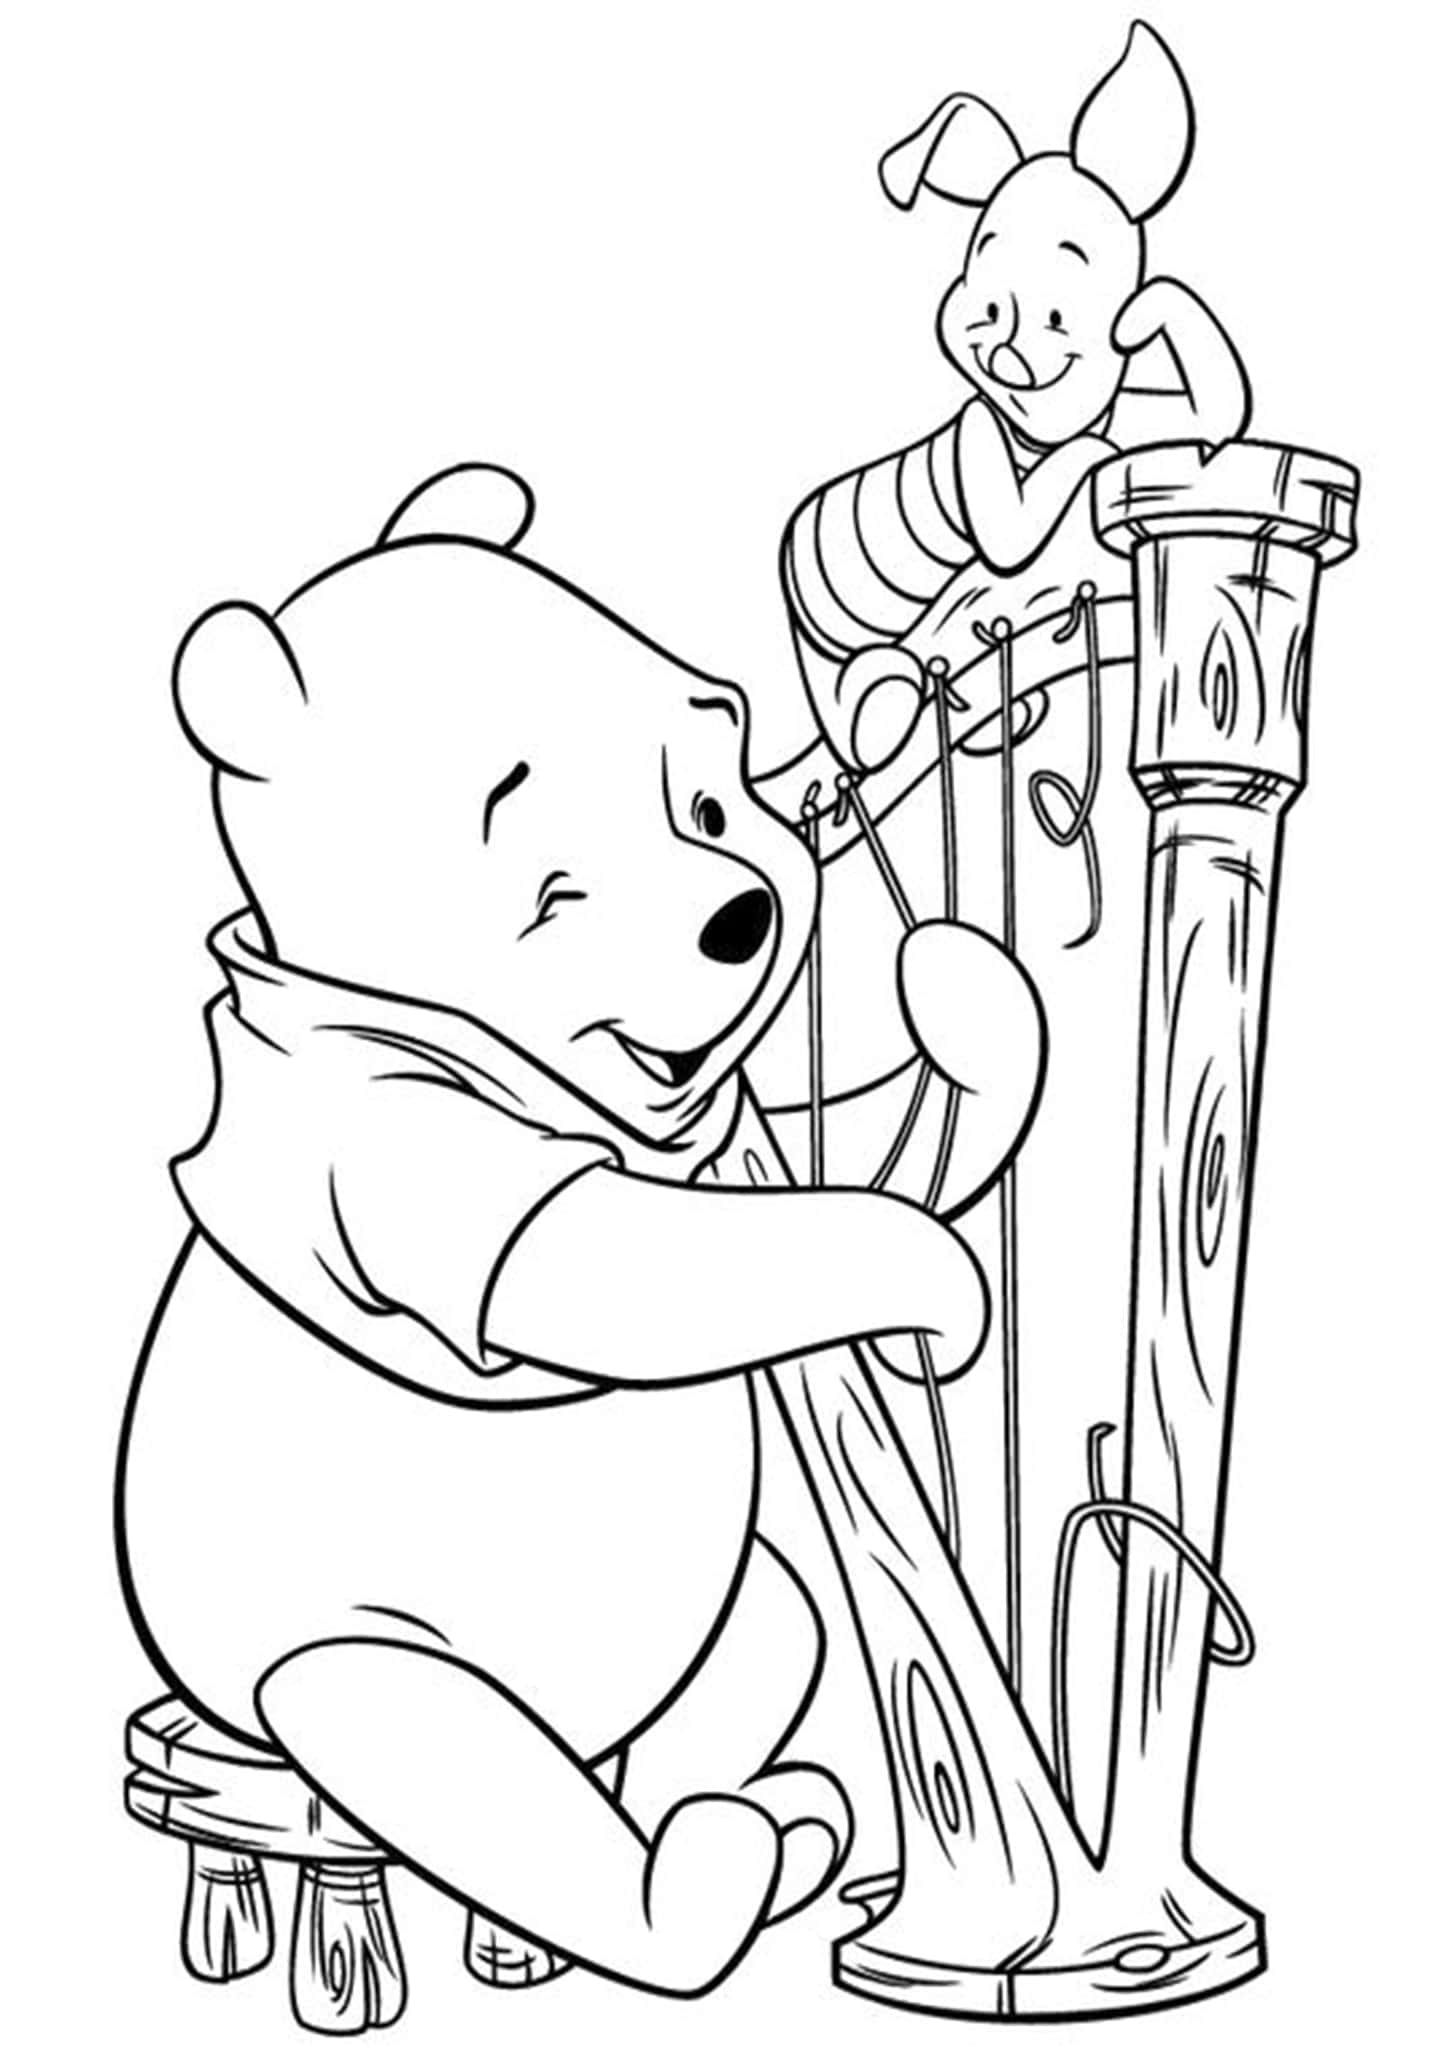 Free Easy To Print Winnie The Pooh Coloring Pages Cartoon Coloring Pages Winnie The Pooh Pictures Disney Coloring Pages